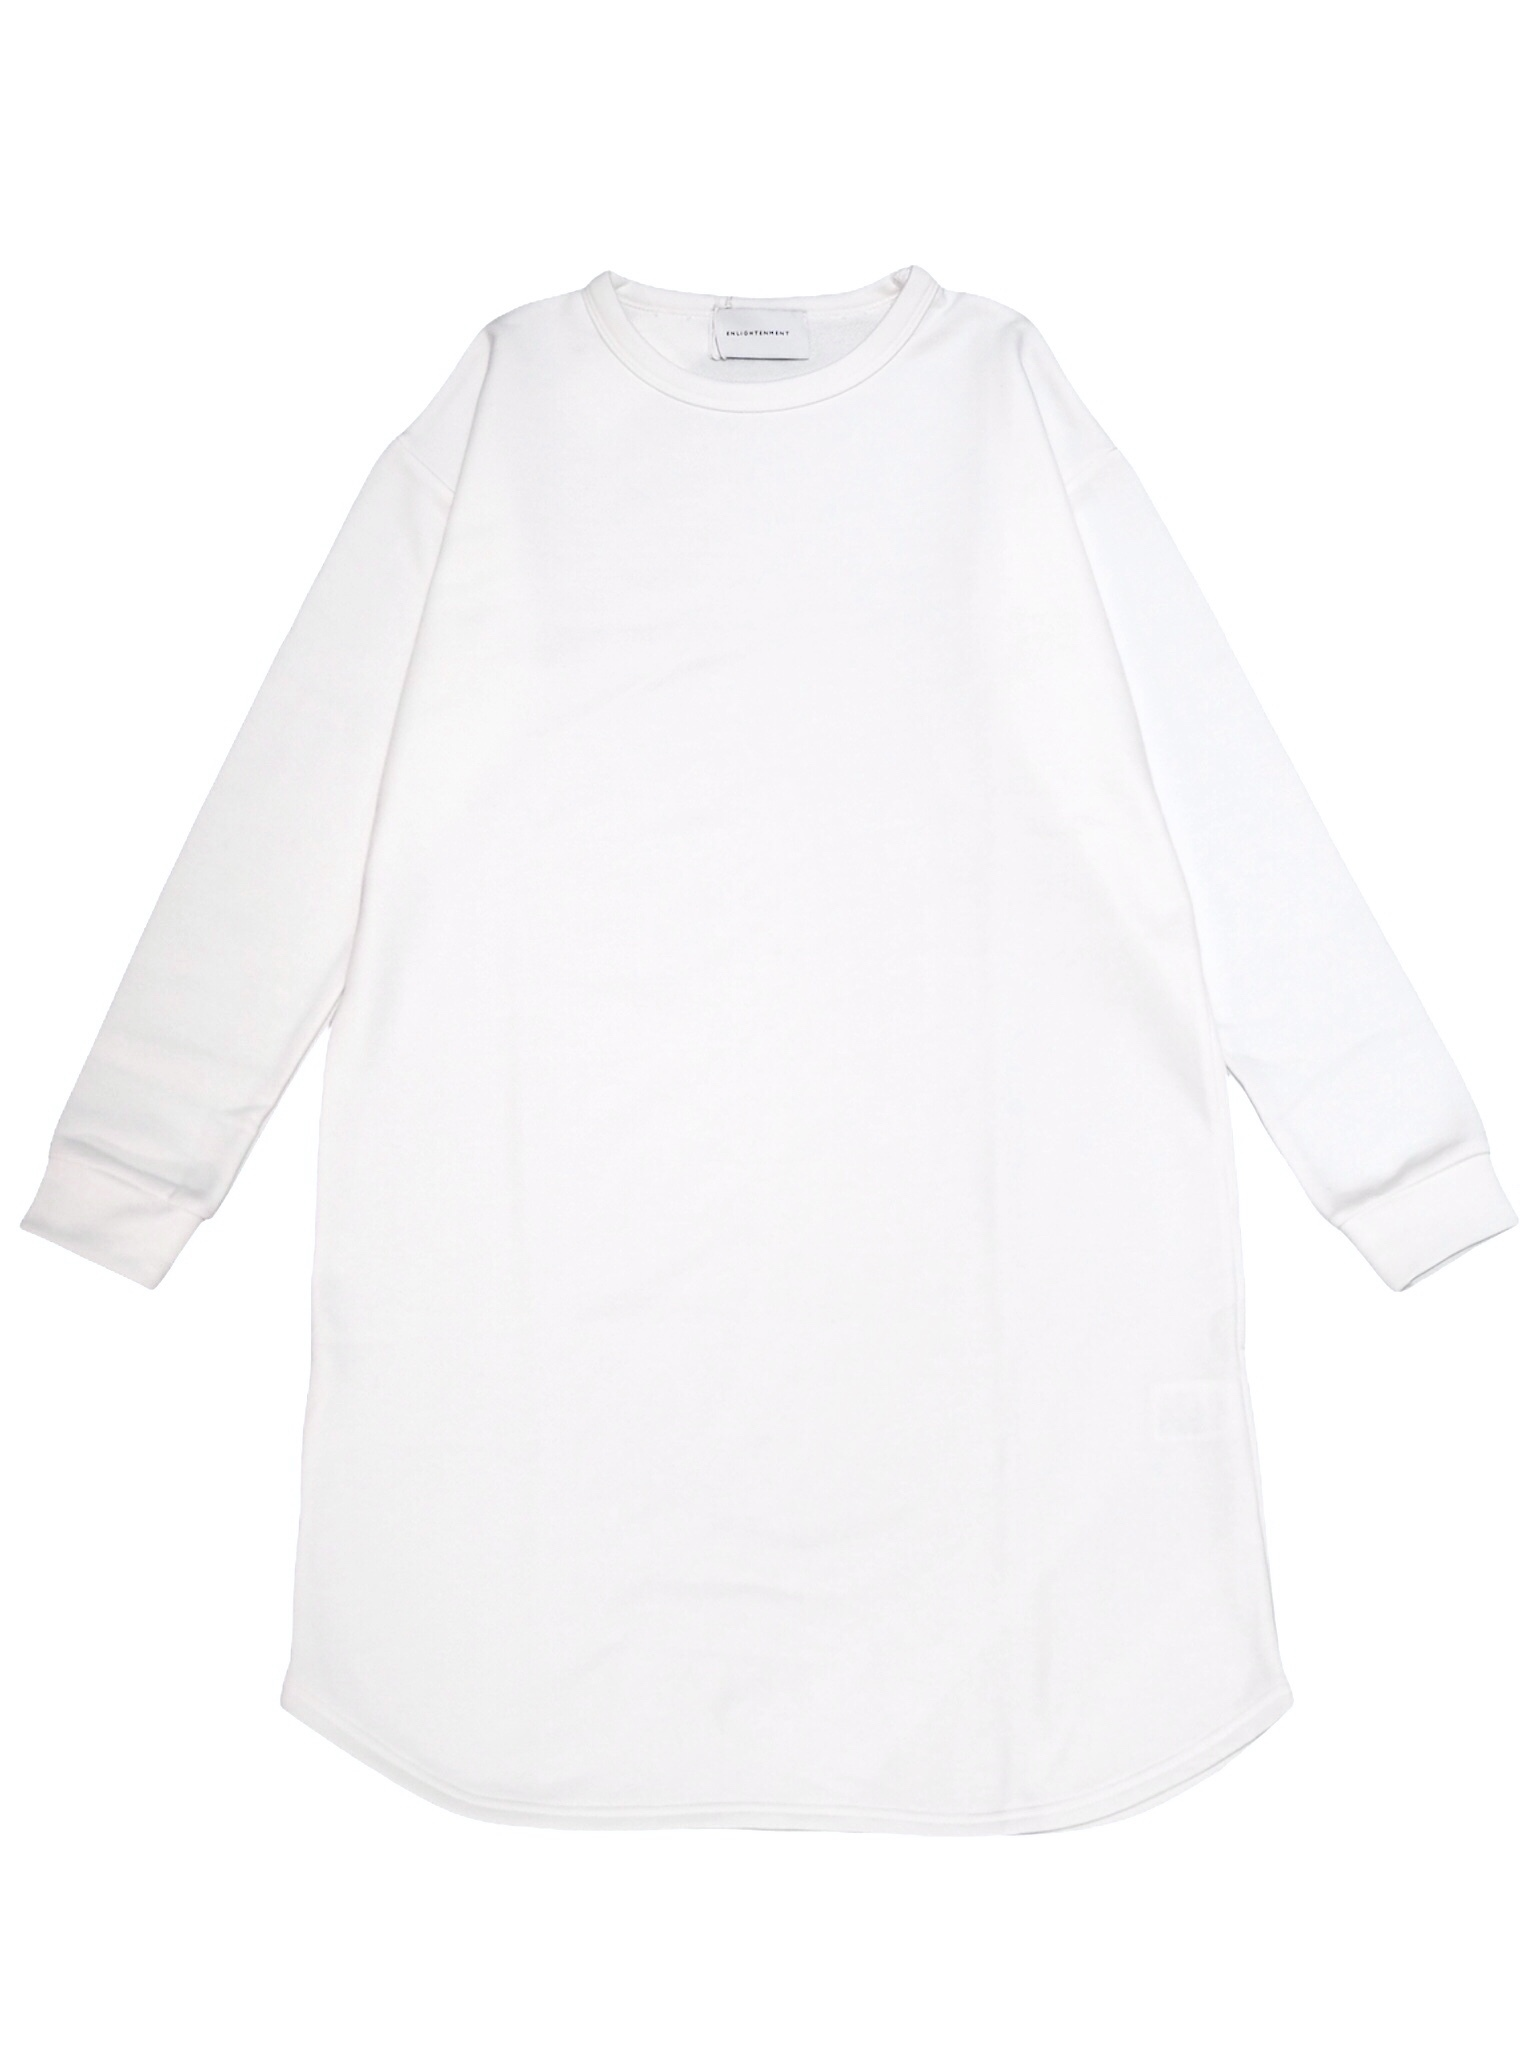 【ENLIGHTENMENT】COTTON RAYON ONEPIECE